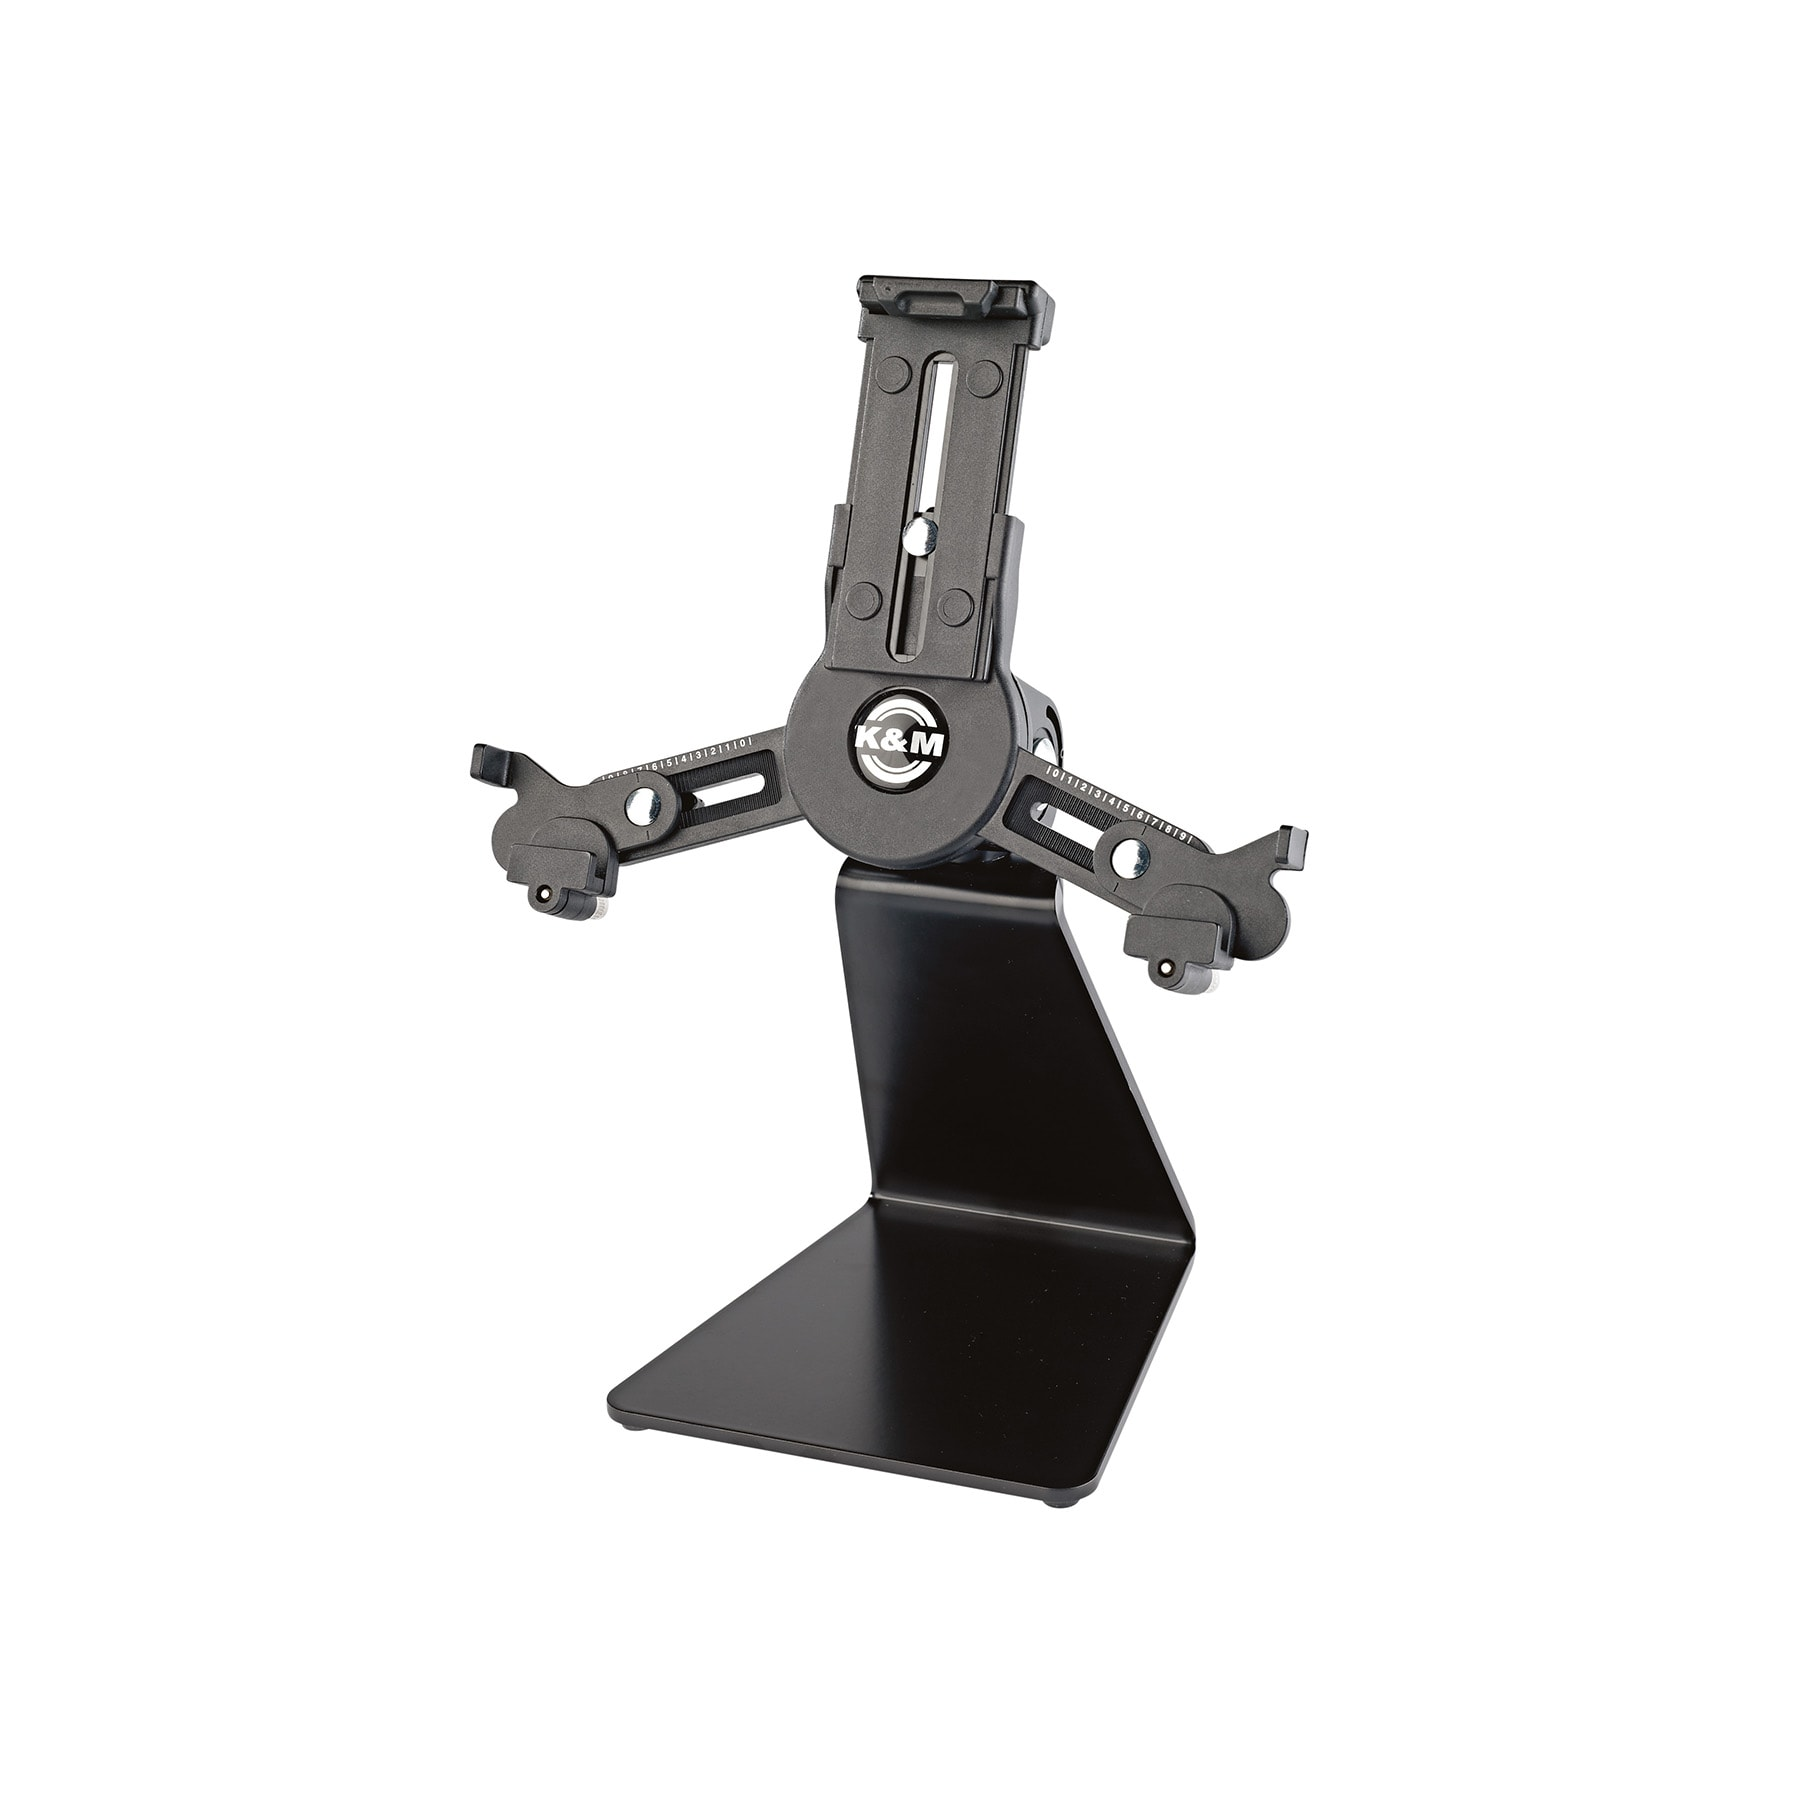 KM19797 - Tablet PC table stand